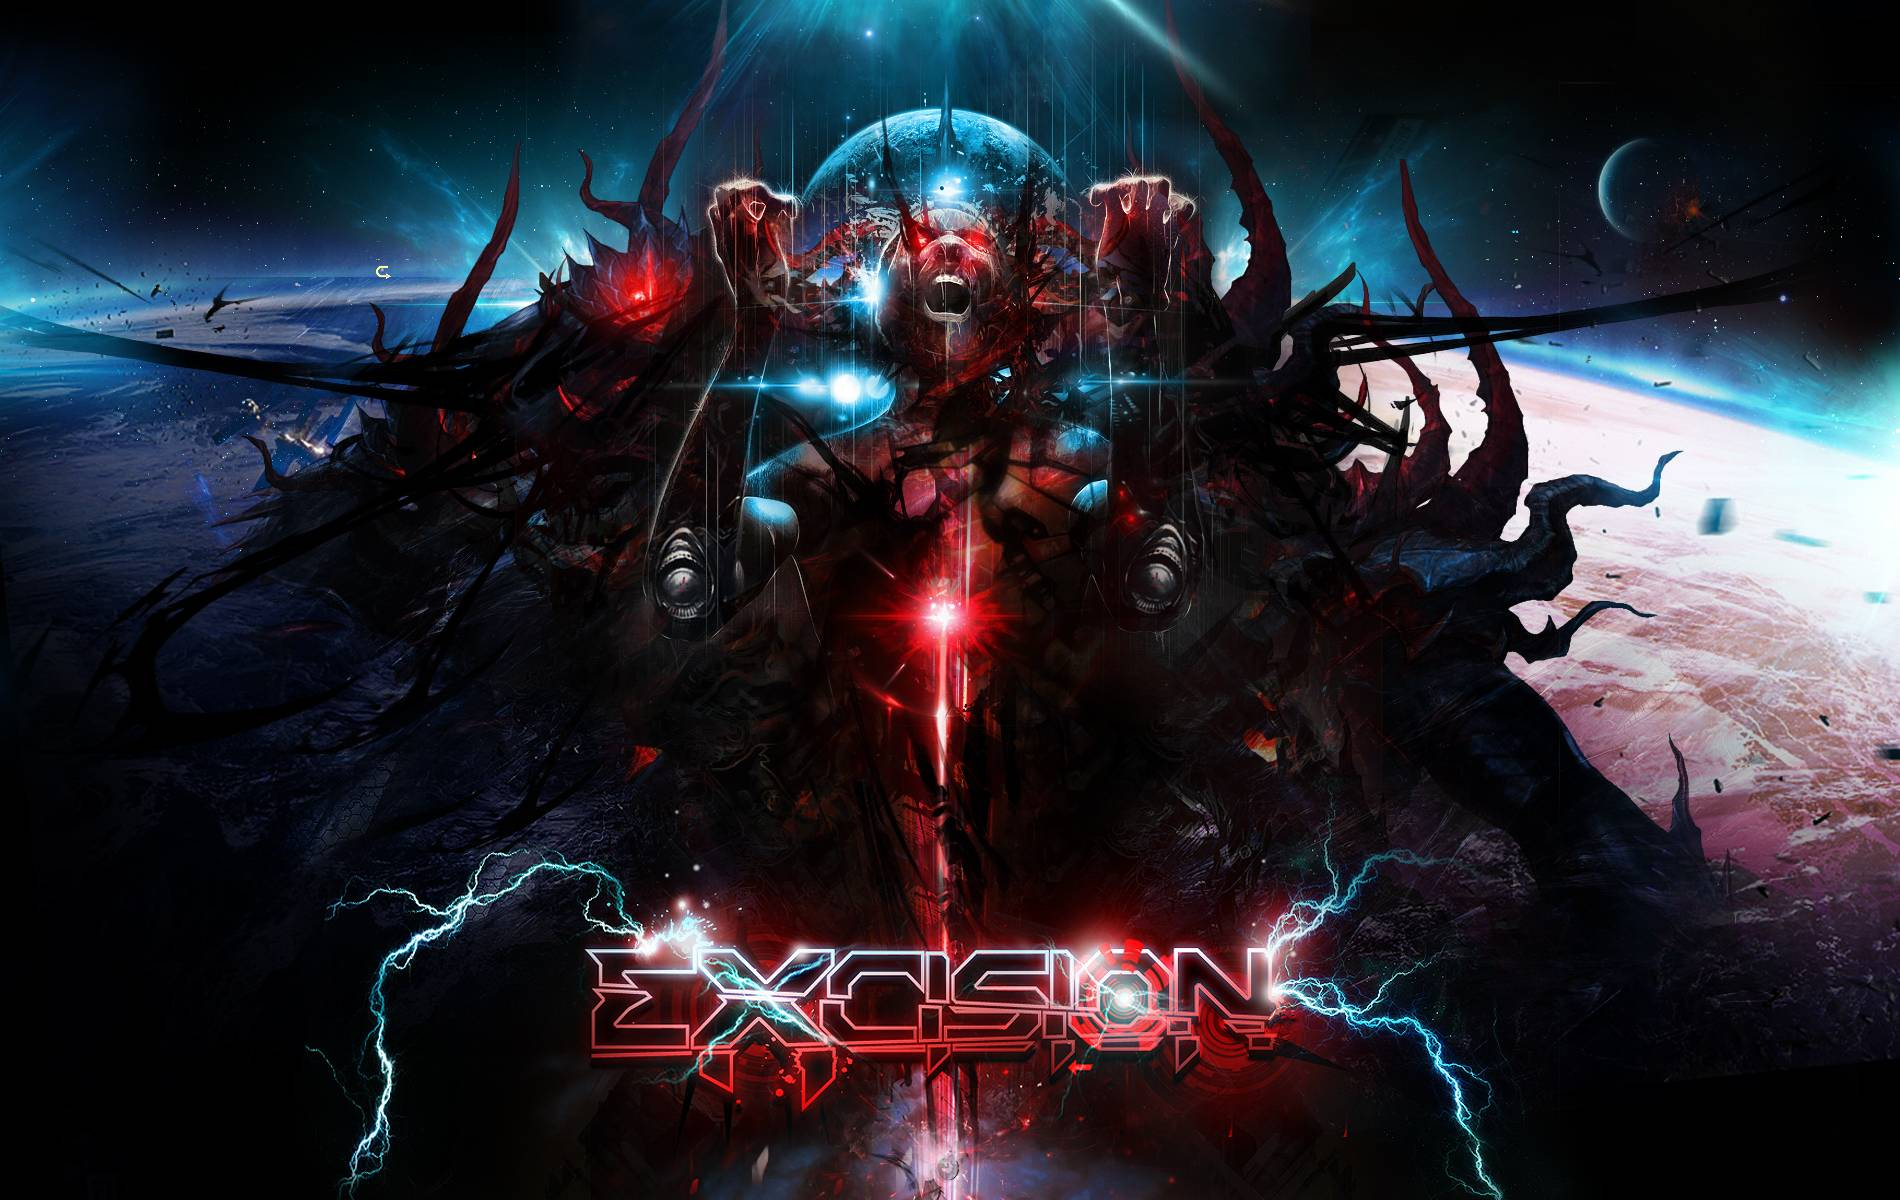 excision full movie download